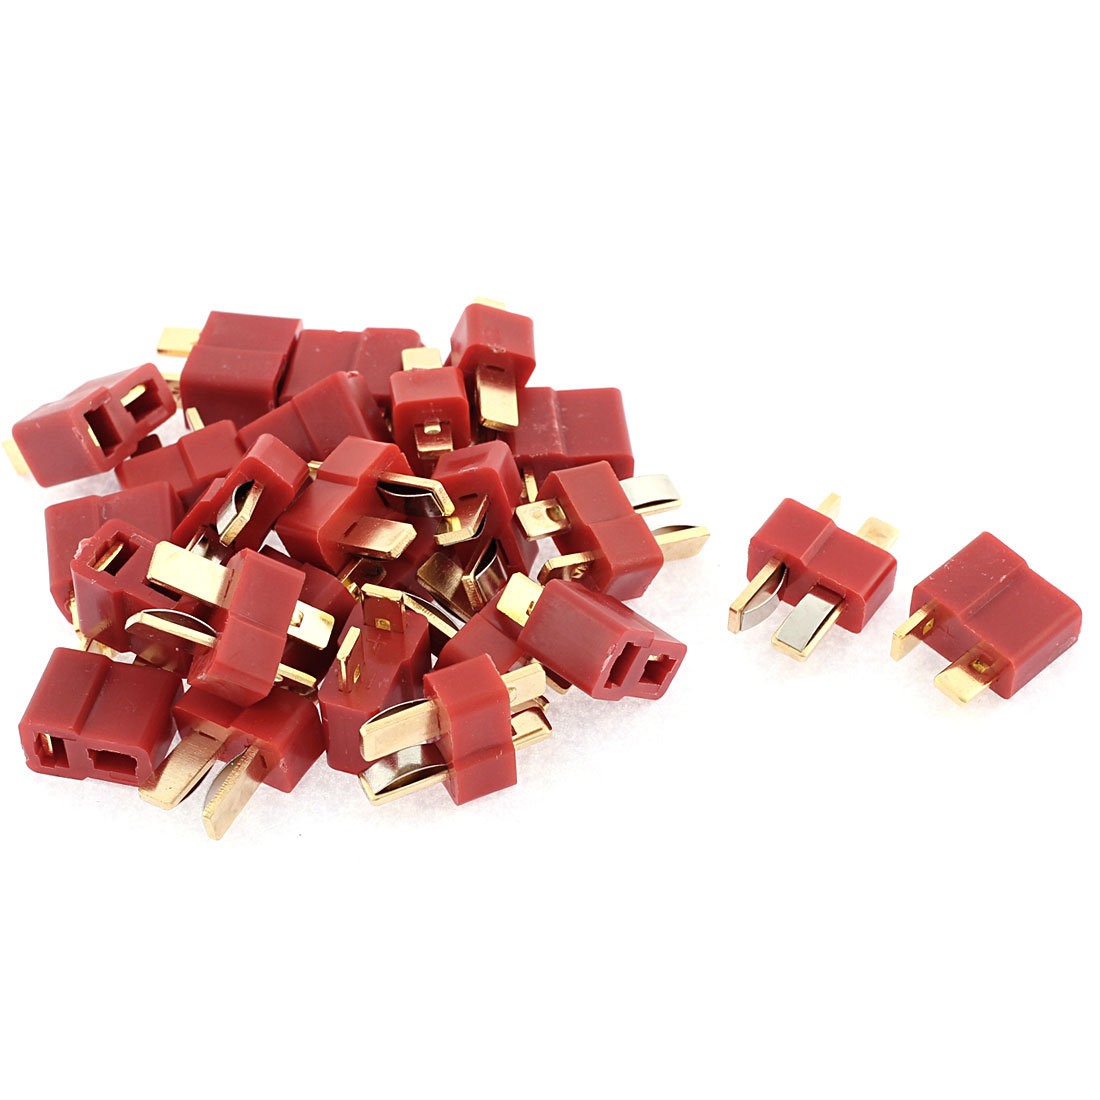 12 Sets T Male + Female Connectors for RC Airplane Aircraft LiPo Battery ESC